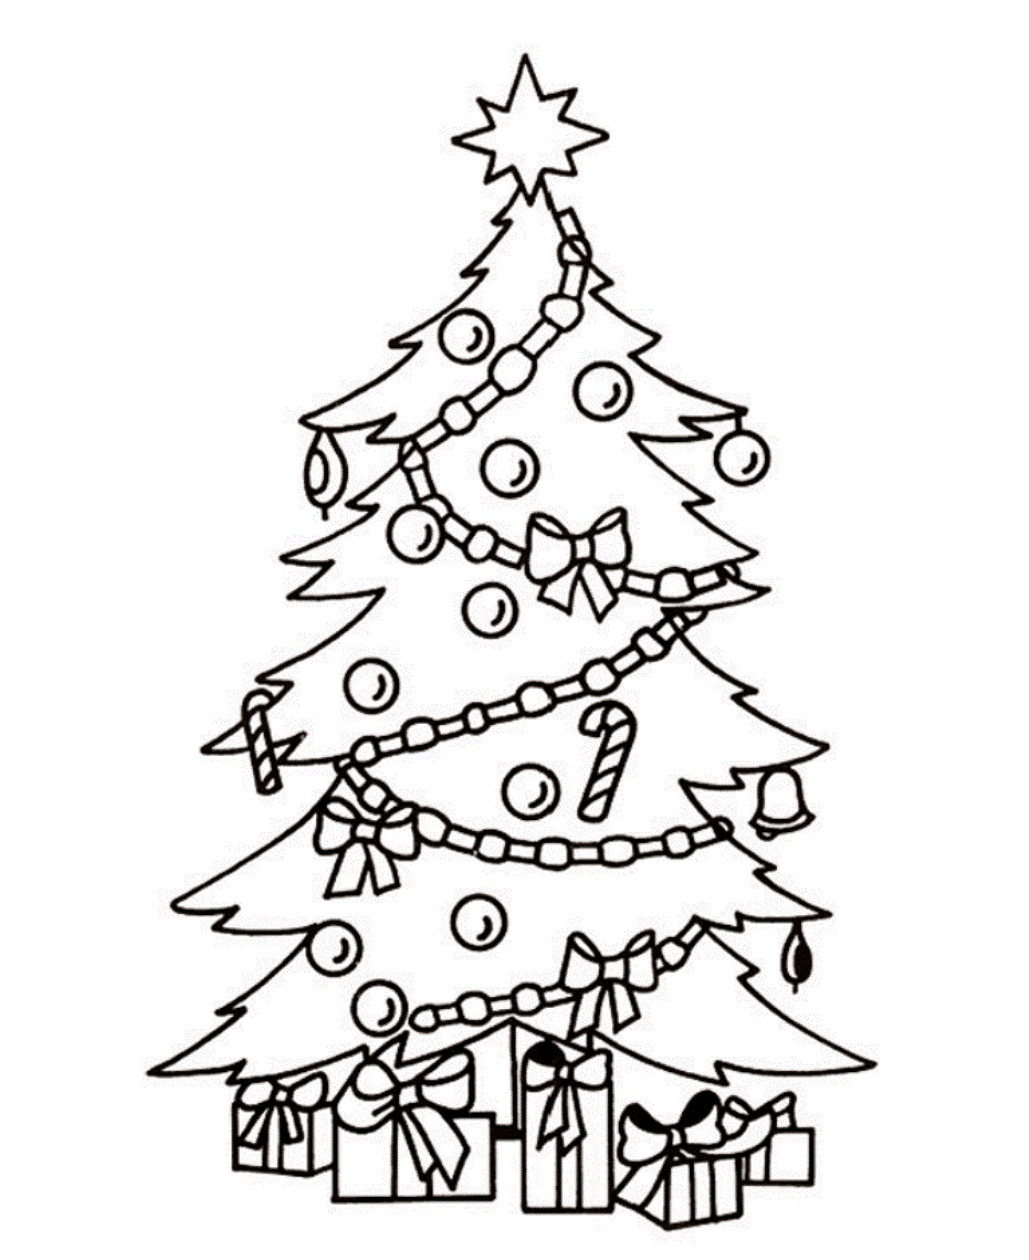 Fir tree clipart black and white free banner freeuse Free Christmas Tree Clip Art Black And White, Download Free Clip Art ... banner freeuse